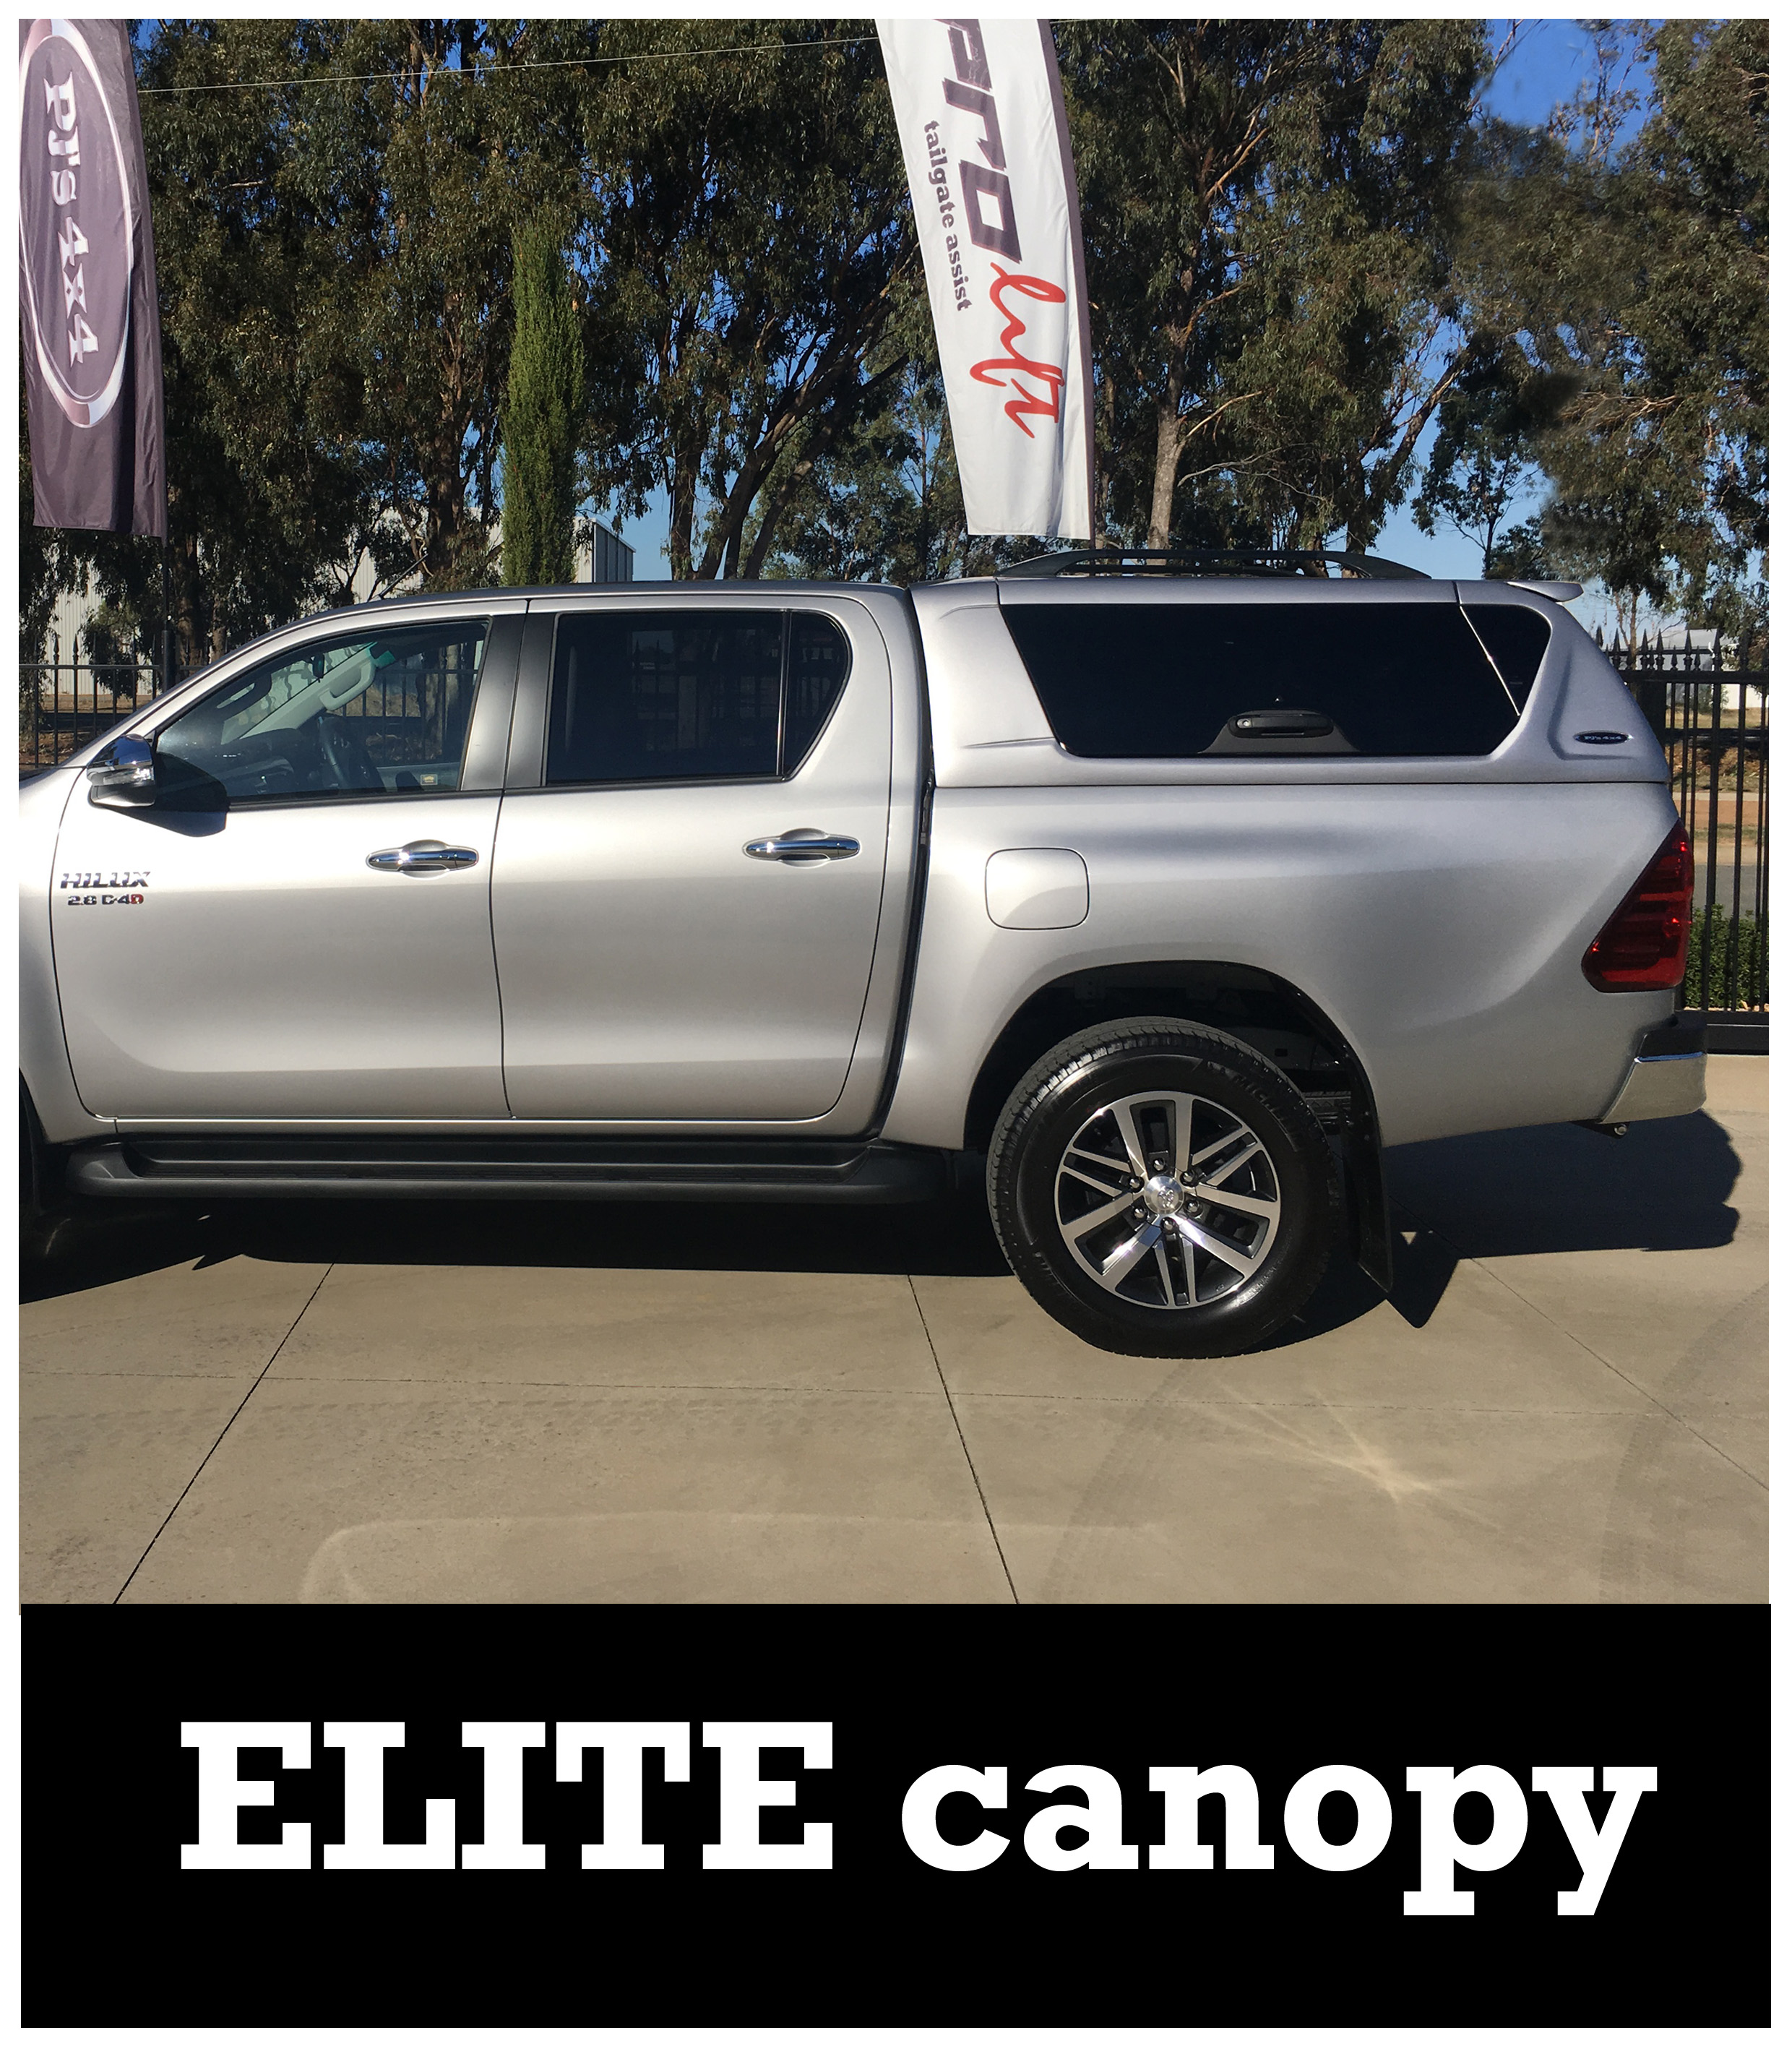 WEbsite_Hilux_ELITE Canopy_Thumbnail_edited-1.jpg